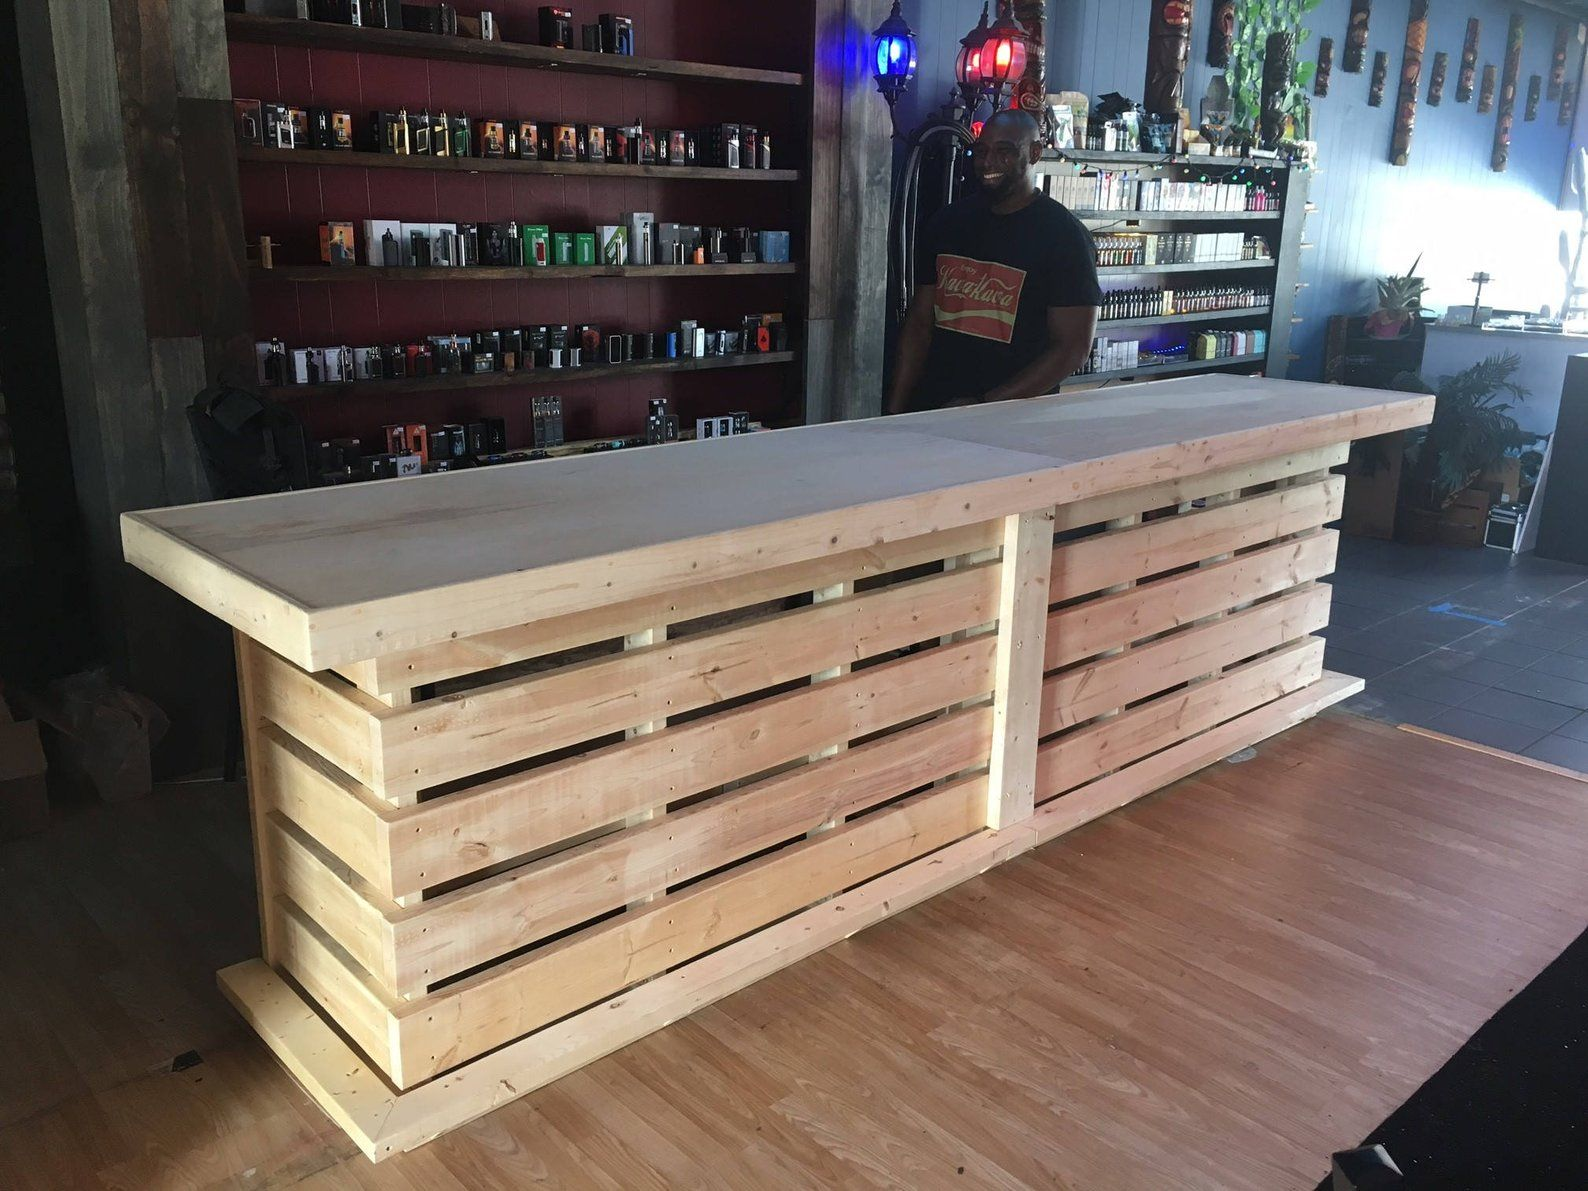 a618012be28e1d751416b7391383fc84 Pallet Bar In Kitchen Ideas on kitchen food bar, kitchen pallet garden, kitchen cabinet bar, kitchen design bar, kitchen furniture bar, kitchen window bar, kitchen counter bar, kitchen pallet table, kitchen pallet art, kitchen table bar,